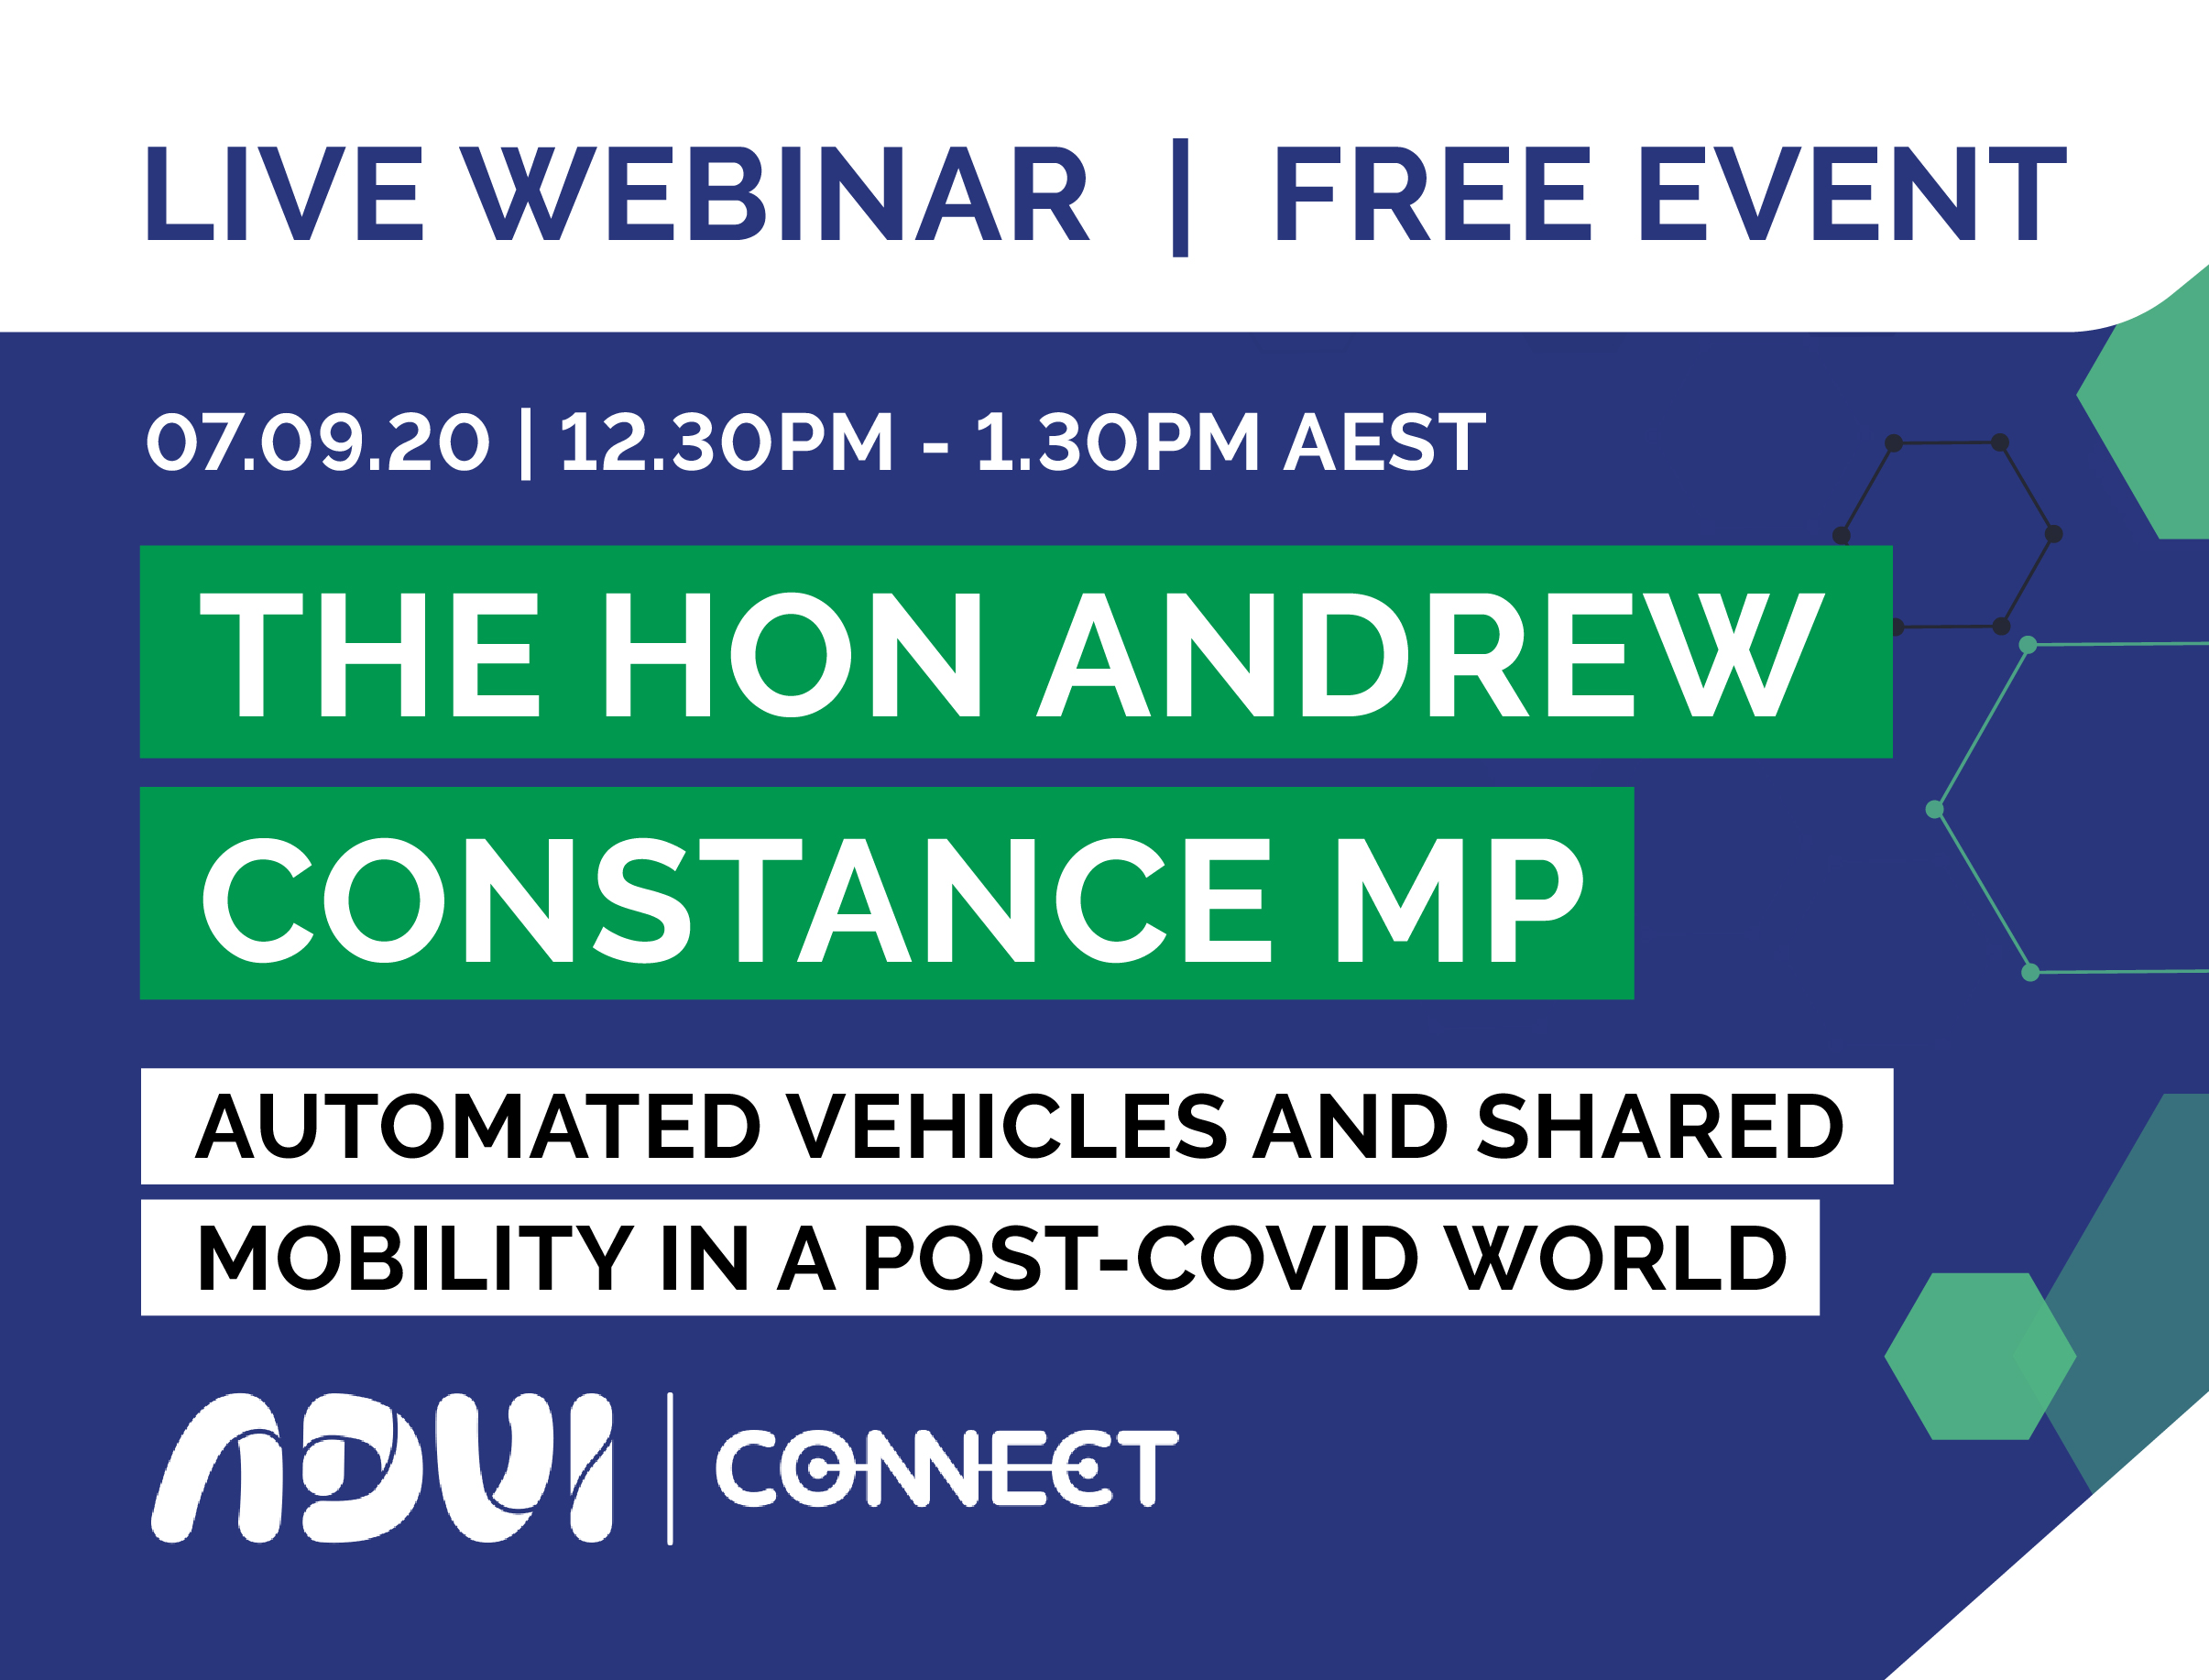 ADVI Webinar and Q&A with the Hon Andrew Constance MP and Rita Excell